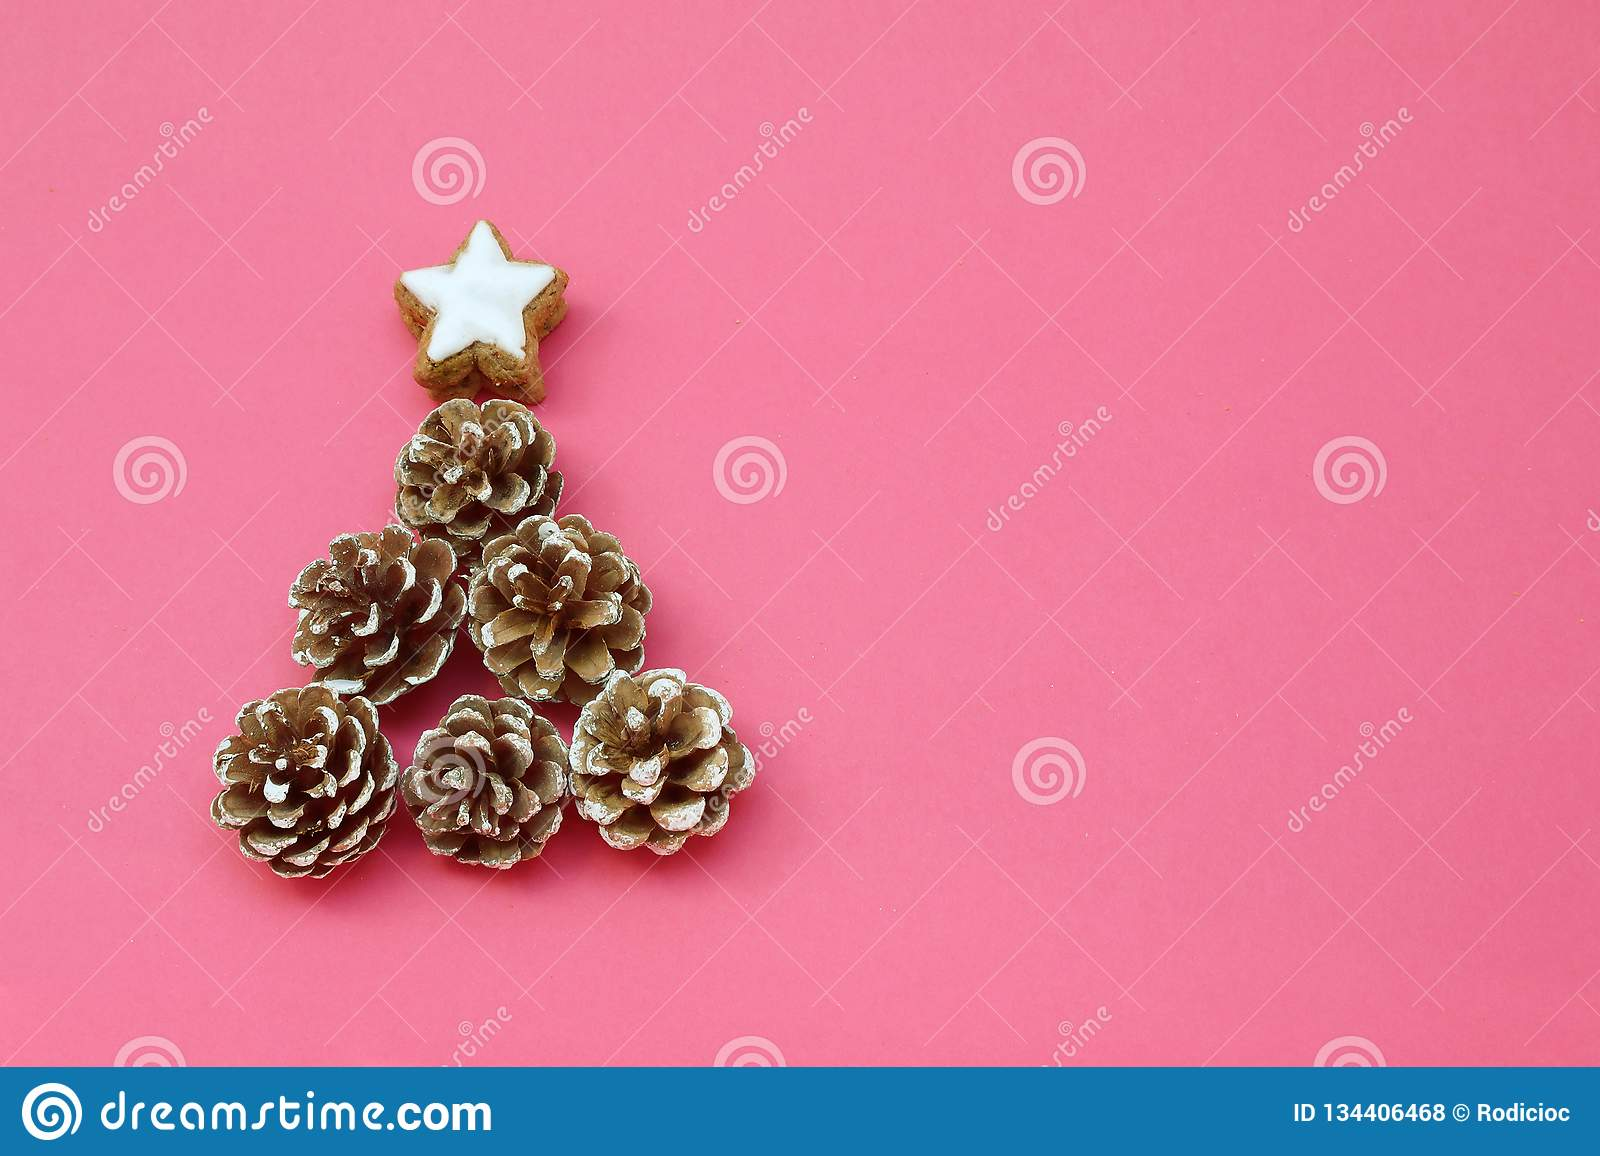 Christmas Tree Made Of Pinecones Ans With A Star Shaped Cookies On The Top Stock Photo Image Of Tree Cookies 134406468